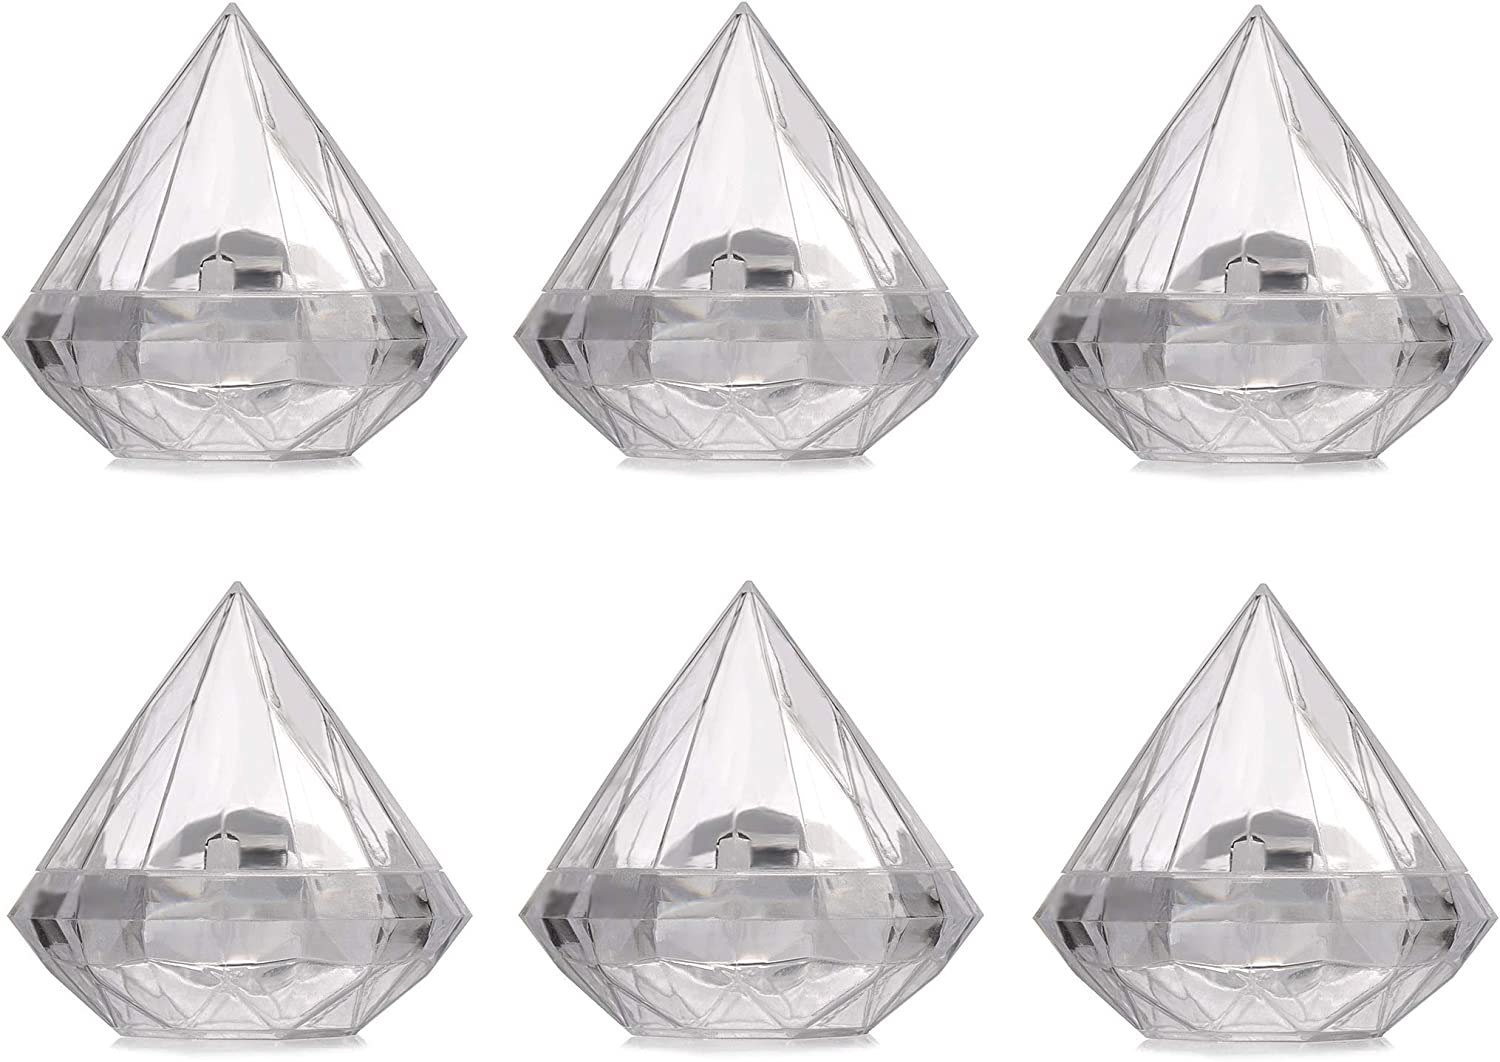 6 Pack Clear Diamond Shape Ornaments - Clear Plastic Fillable Ornaments - Christmas Fillable Ornaments, Bath Bomb Ornaments, Hollow Ornaments for Wedding Party Decoration, Craft Art, Holiday (7CM)